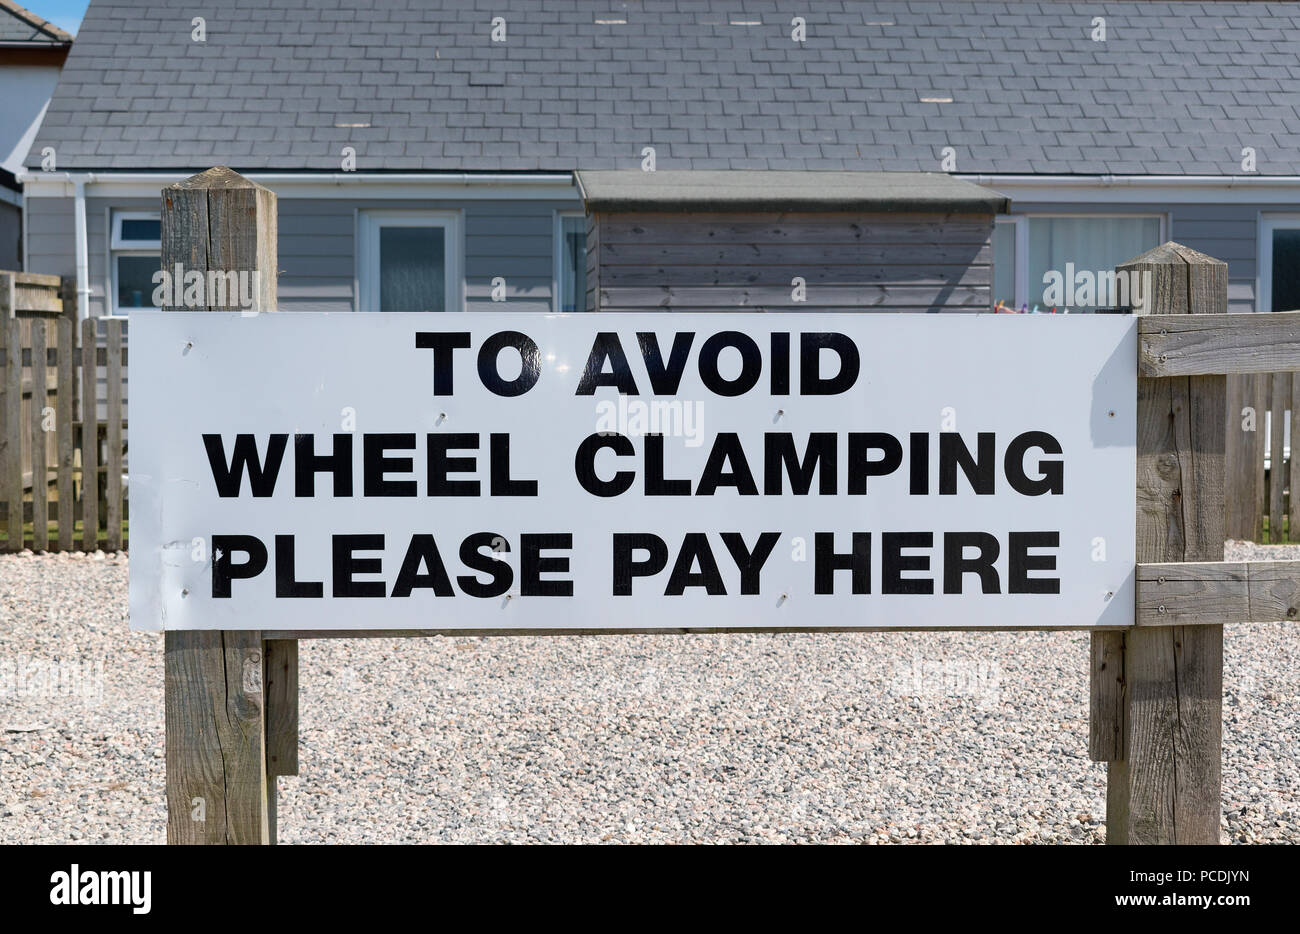 wheel clamping warning sign on private property. - Stock Image